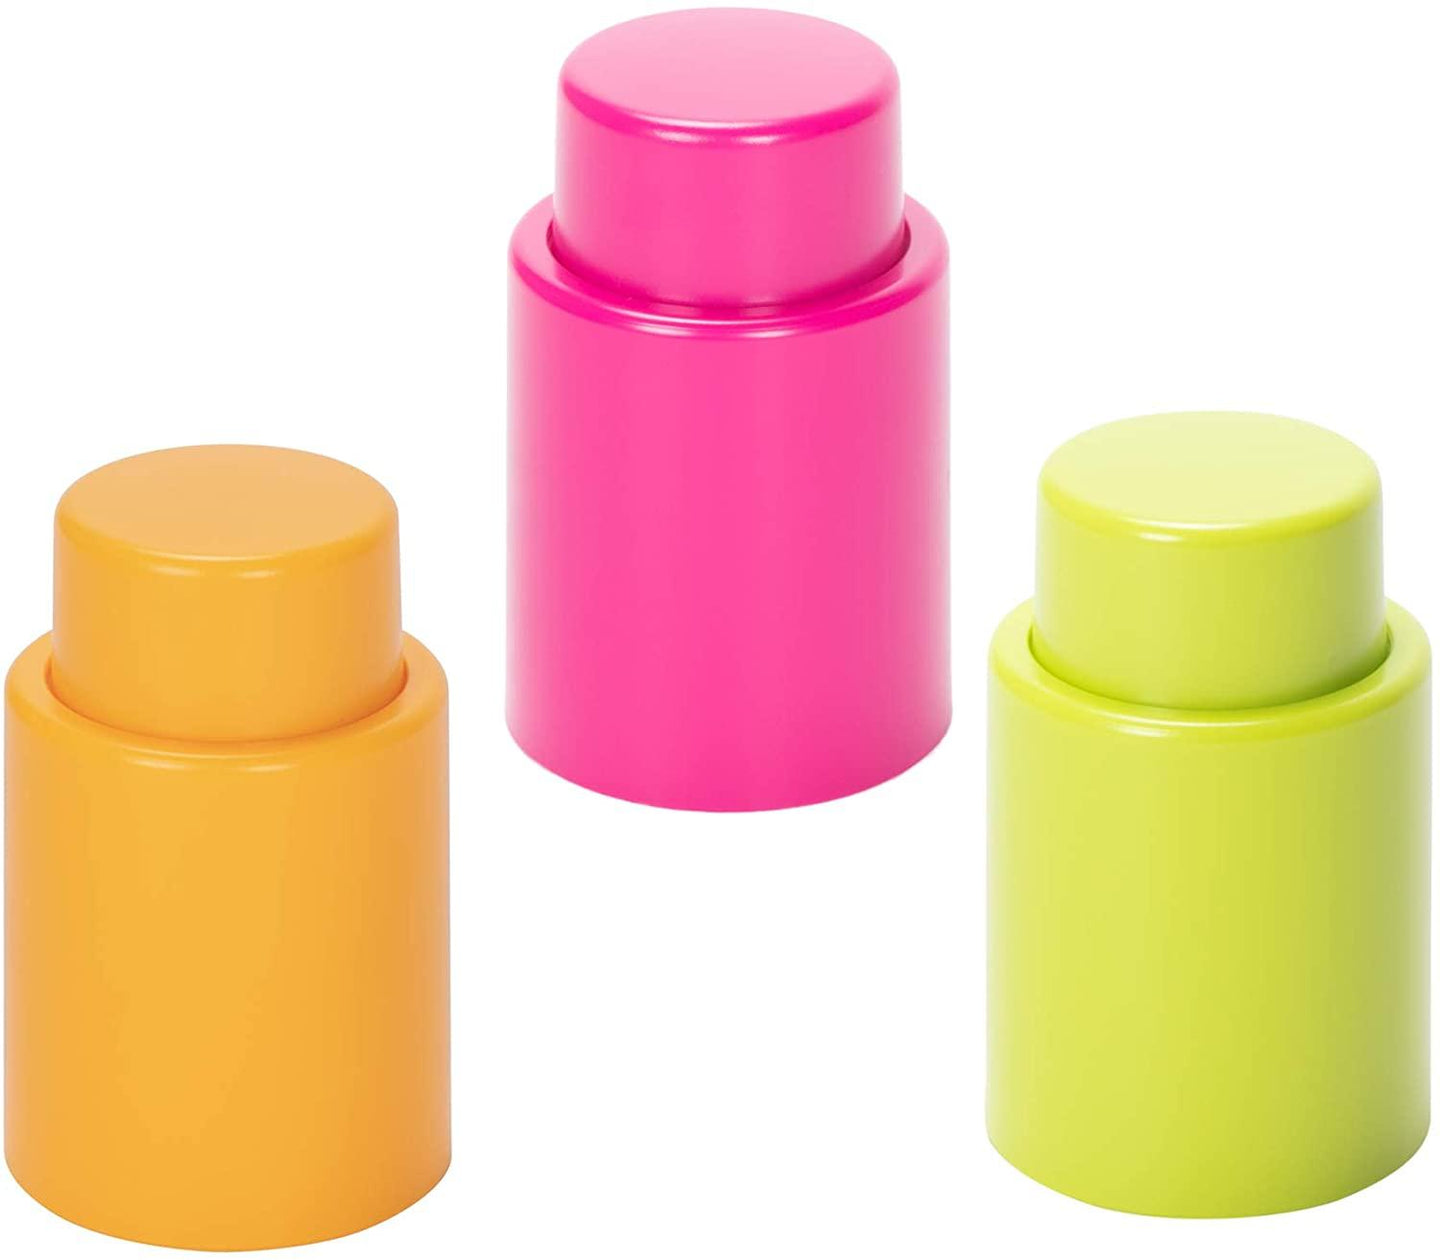 Vacuum Wine Stopper - Assorted Colors